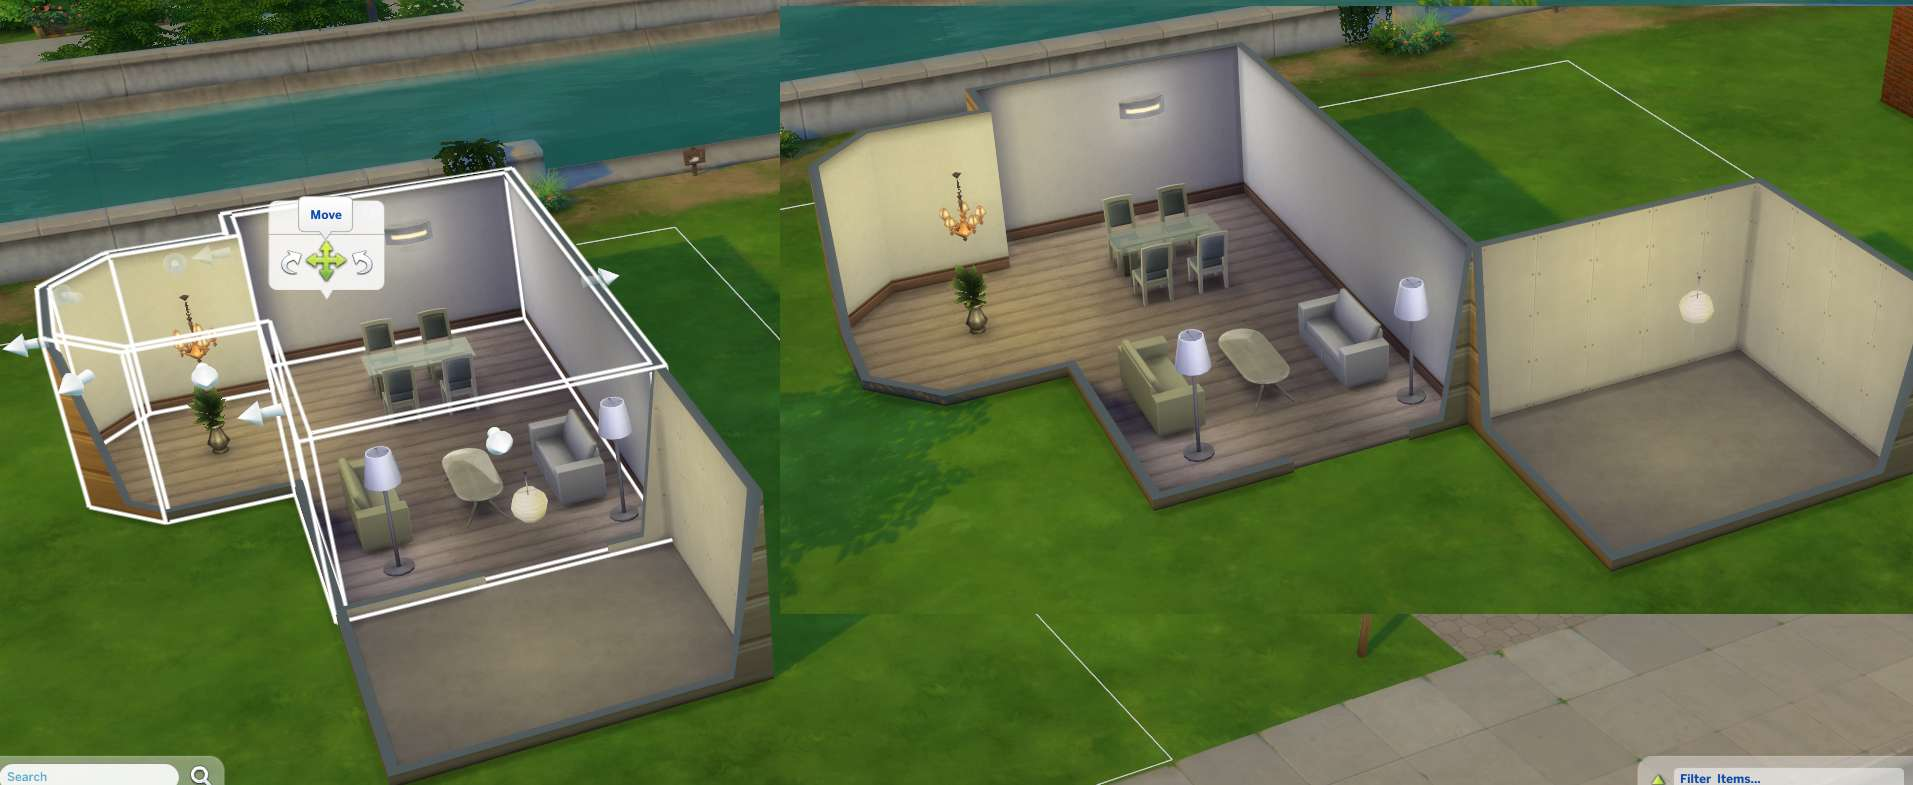 sims 4 building how tos move an entire room anywhere on the lot - Sims 4 Home Design